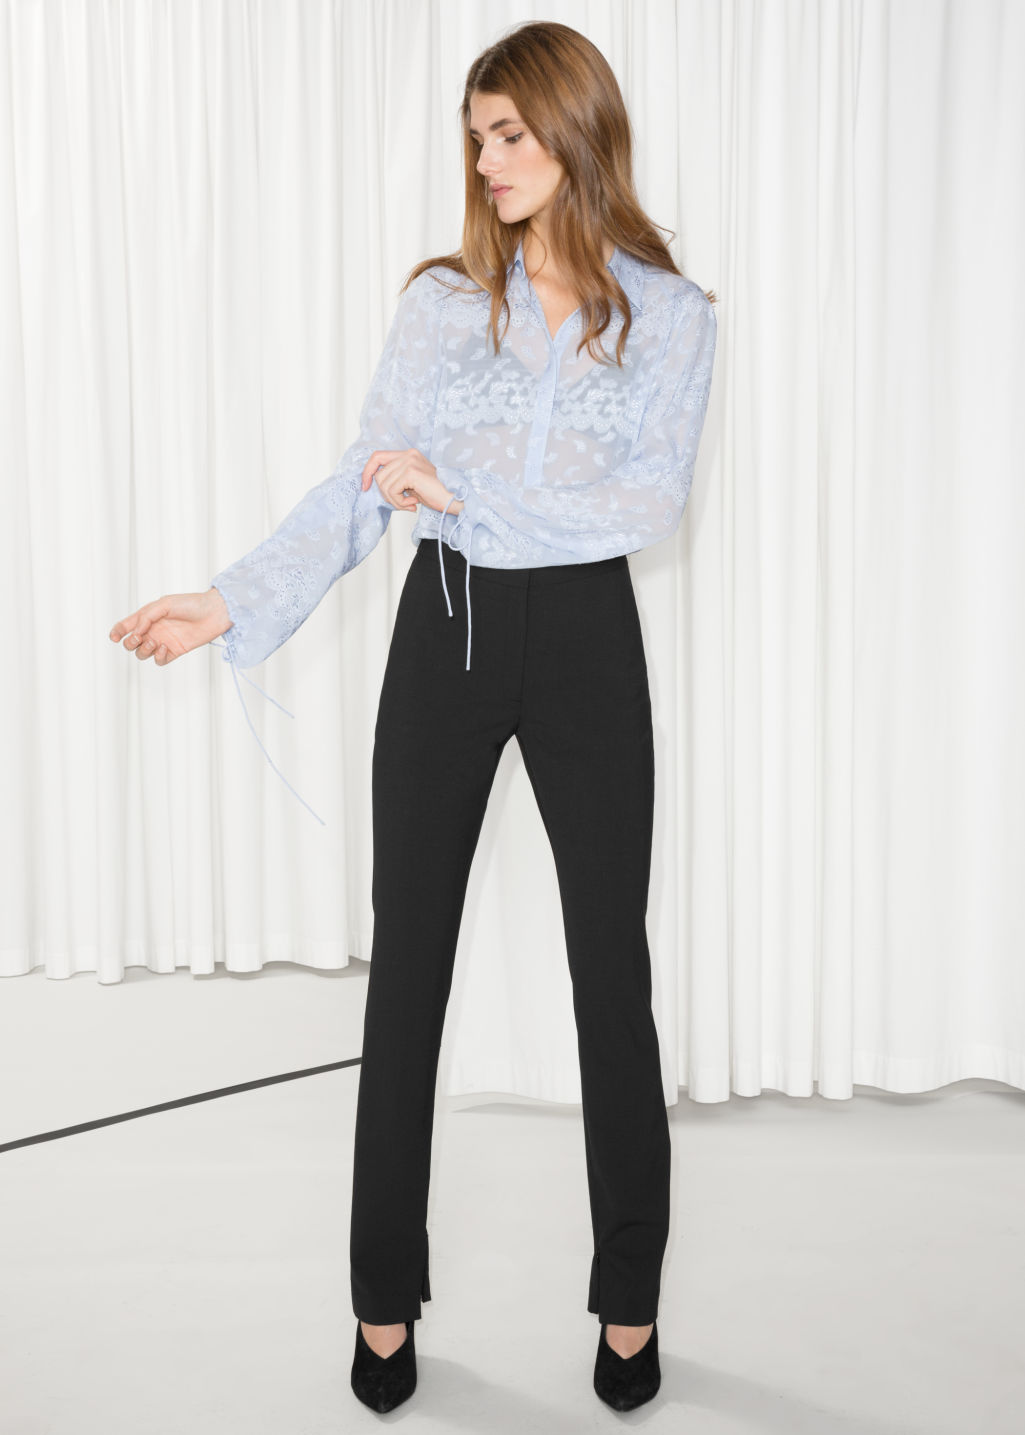 new product cf9b6 c036d INFO ·   Other Stories. Skinny Flare Trousers